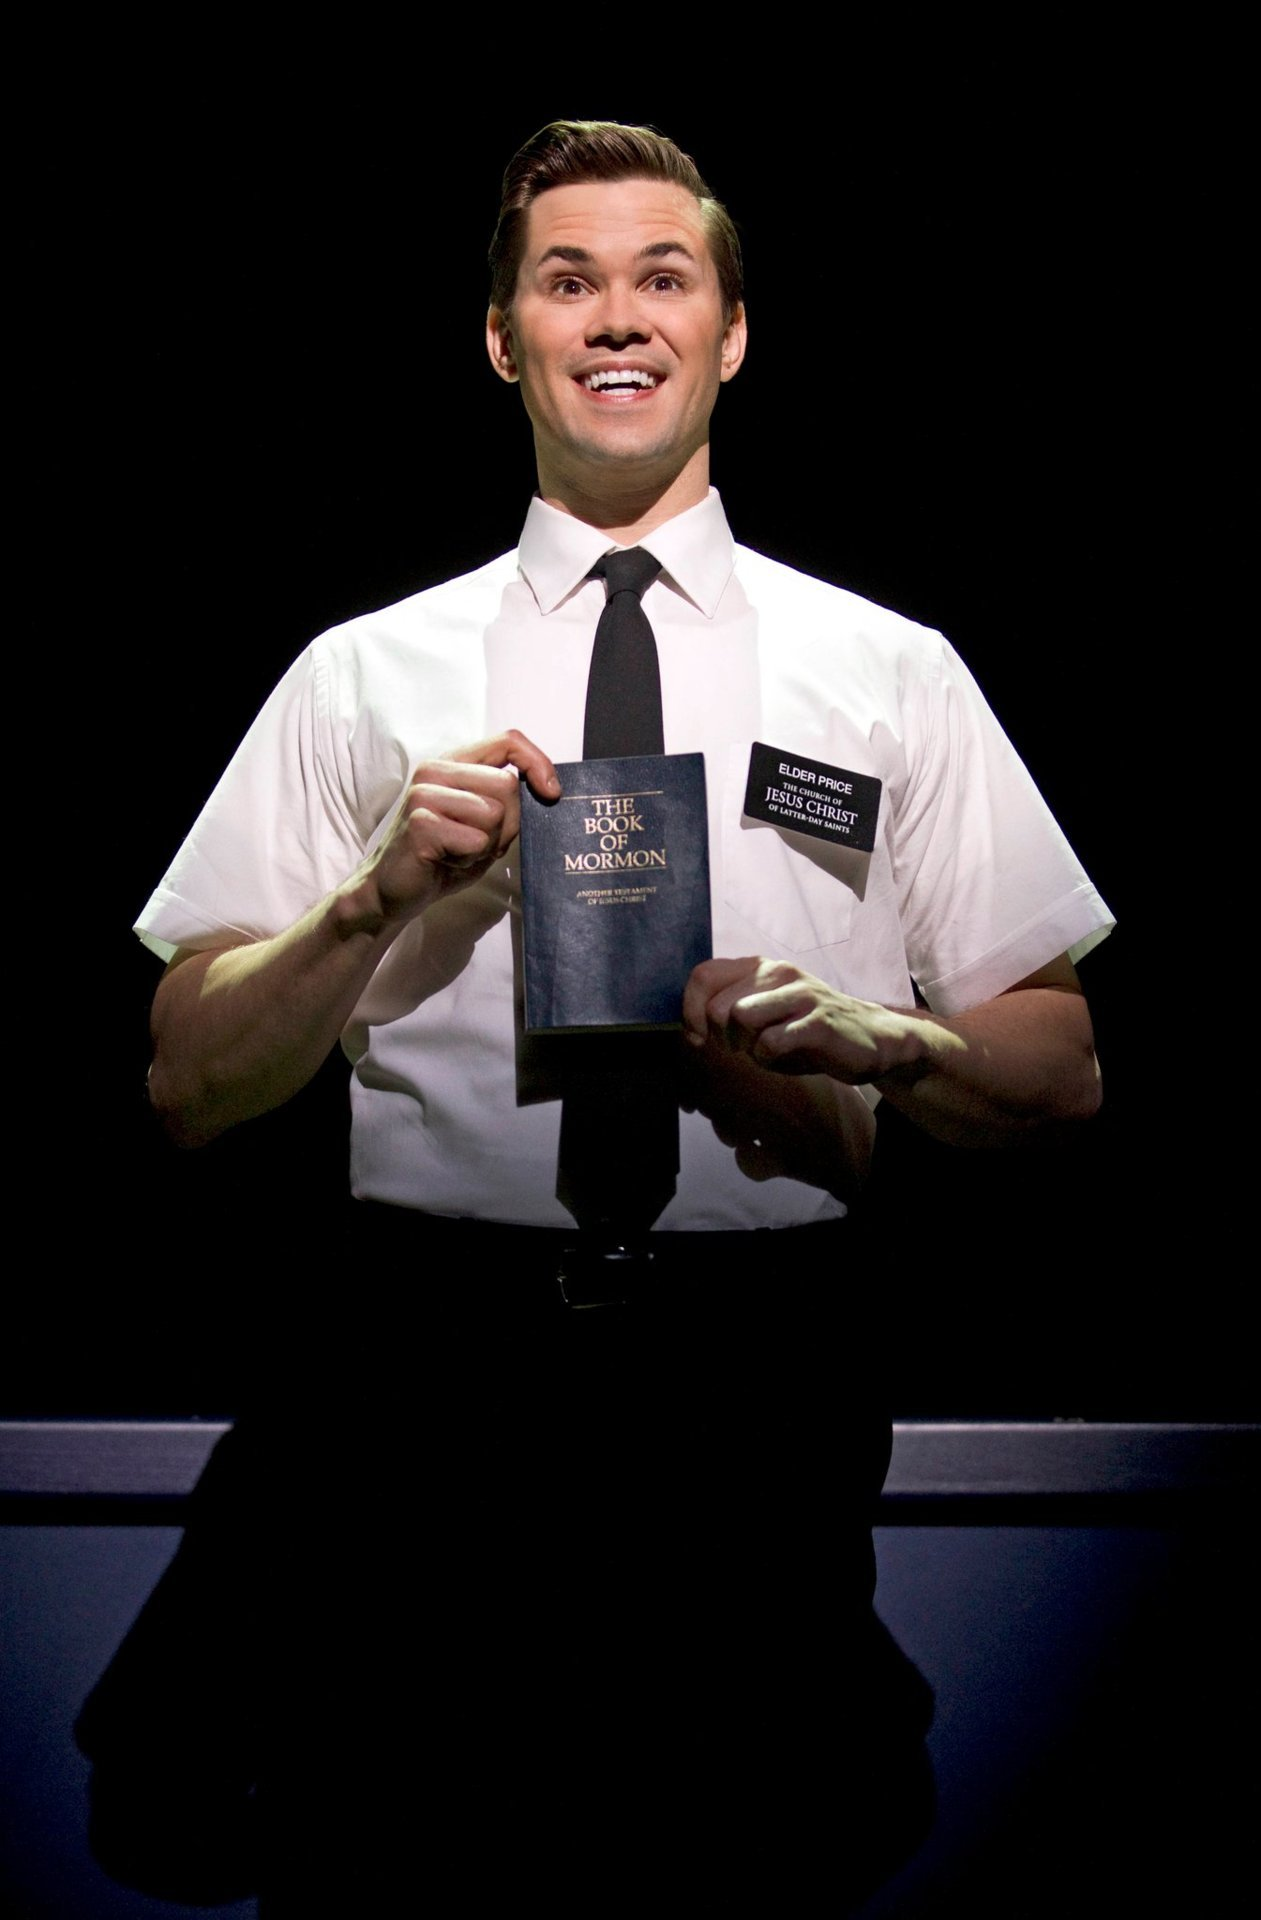 Congratulations to The Book of Mormon on Broadway for winning this year's Grammy Award for Best Musical Theatre Album!